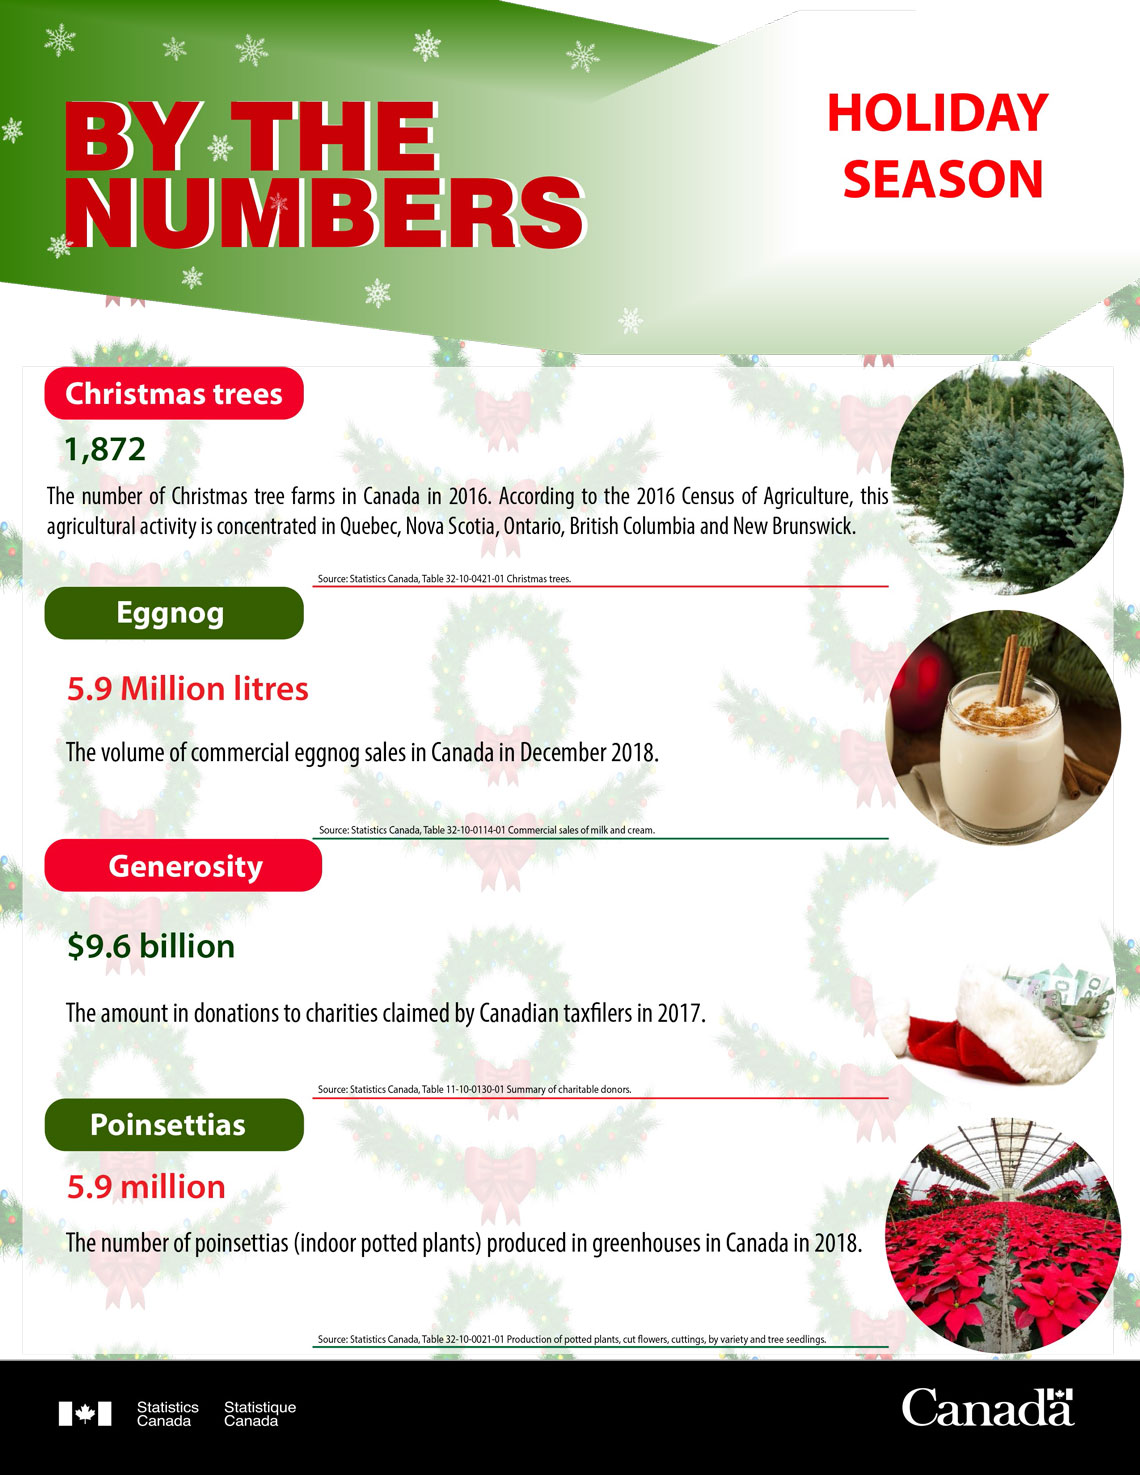 By the numbers - Holiday Season